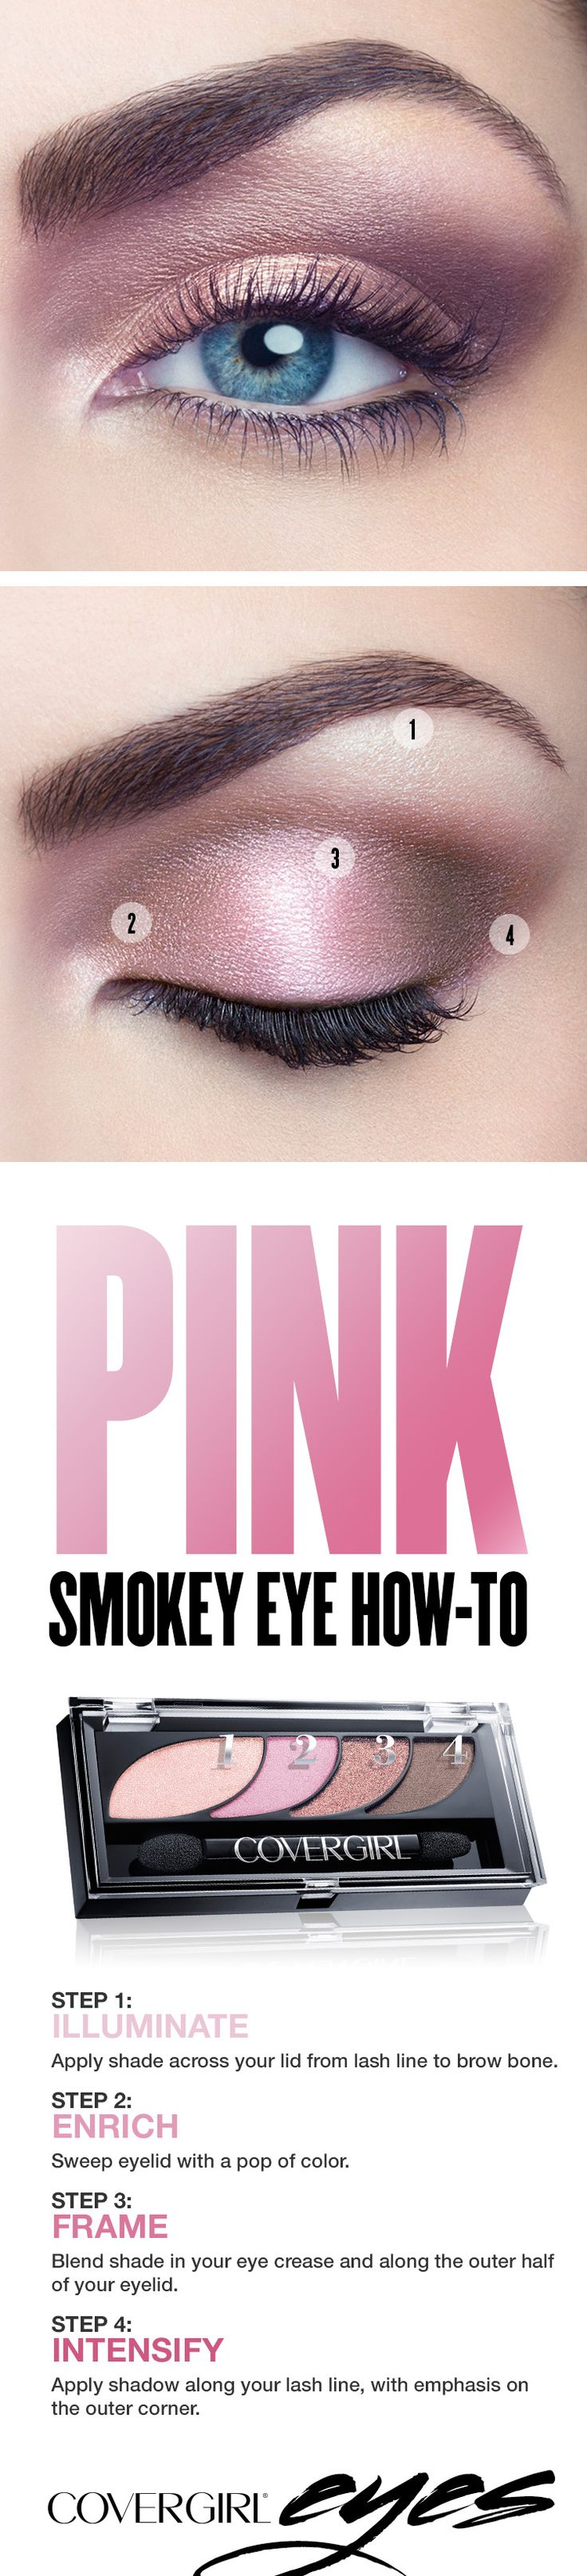 Try our simple step-by-step tutorial this holiday season for a pretty pink smokey eye, featuring COVERGIRL Eyeshadow Quads in Blooming Blushes. This makeup palette makes it easy to add some shimmery color to your holiday look. Perfect for Christmas or New Year's Eve parties when you'd like to try something other than a standard black smokey eye.